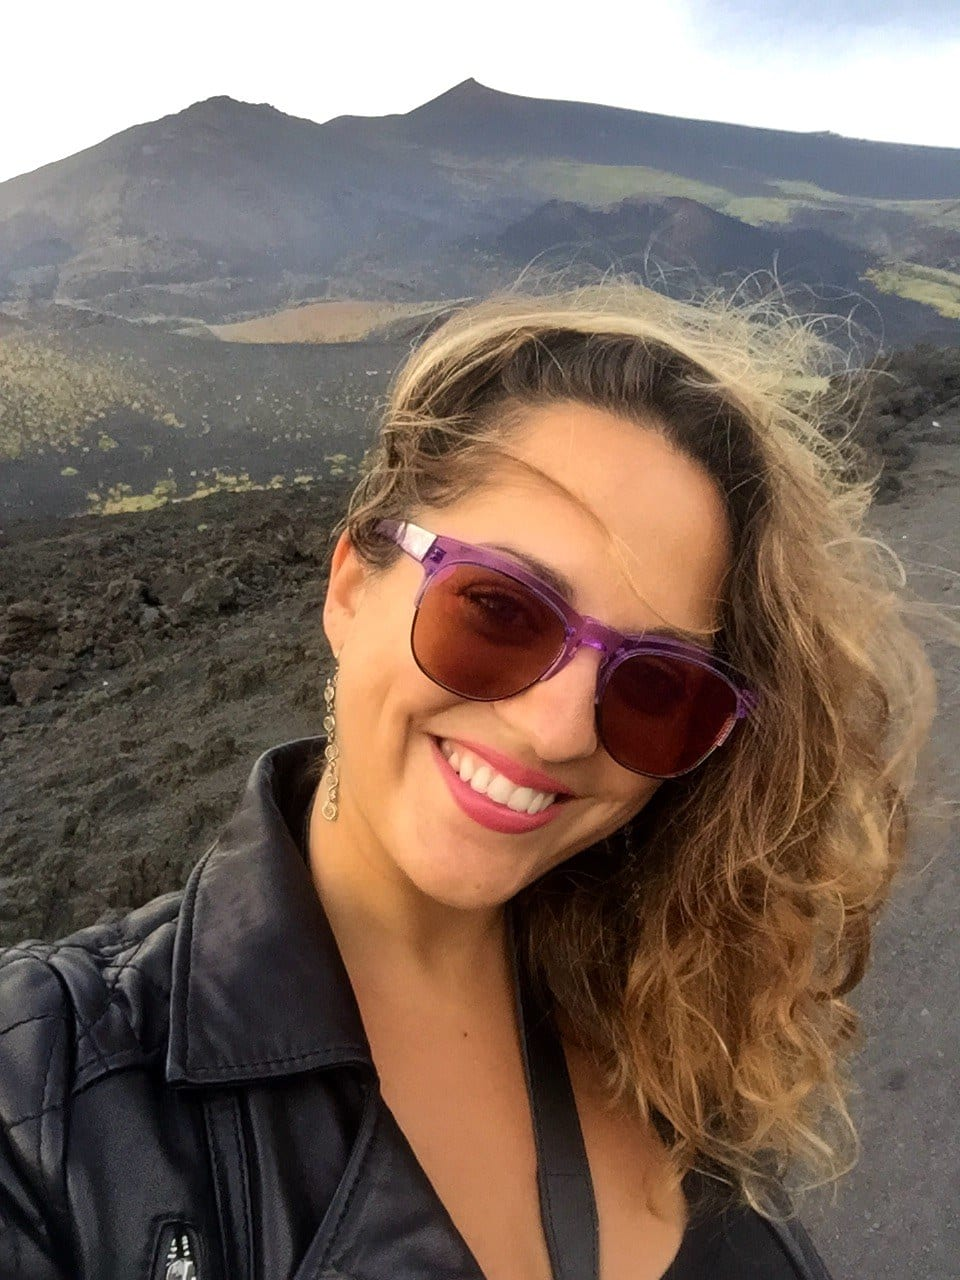 Kate on Mount Etna